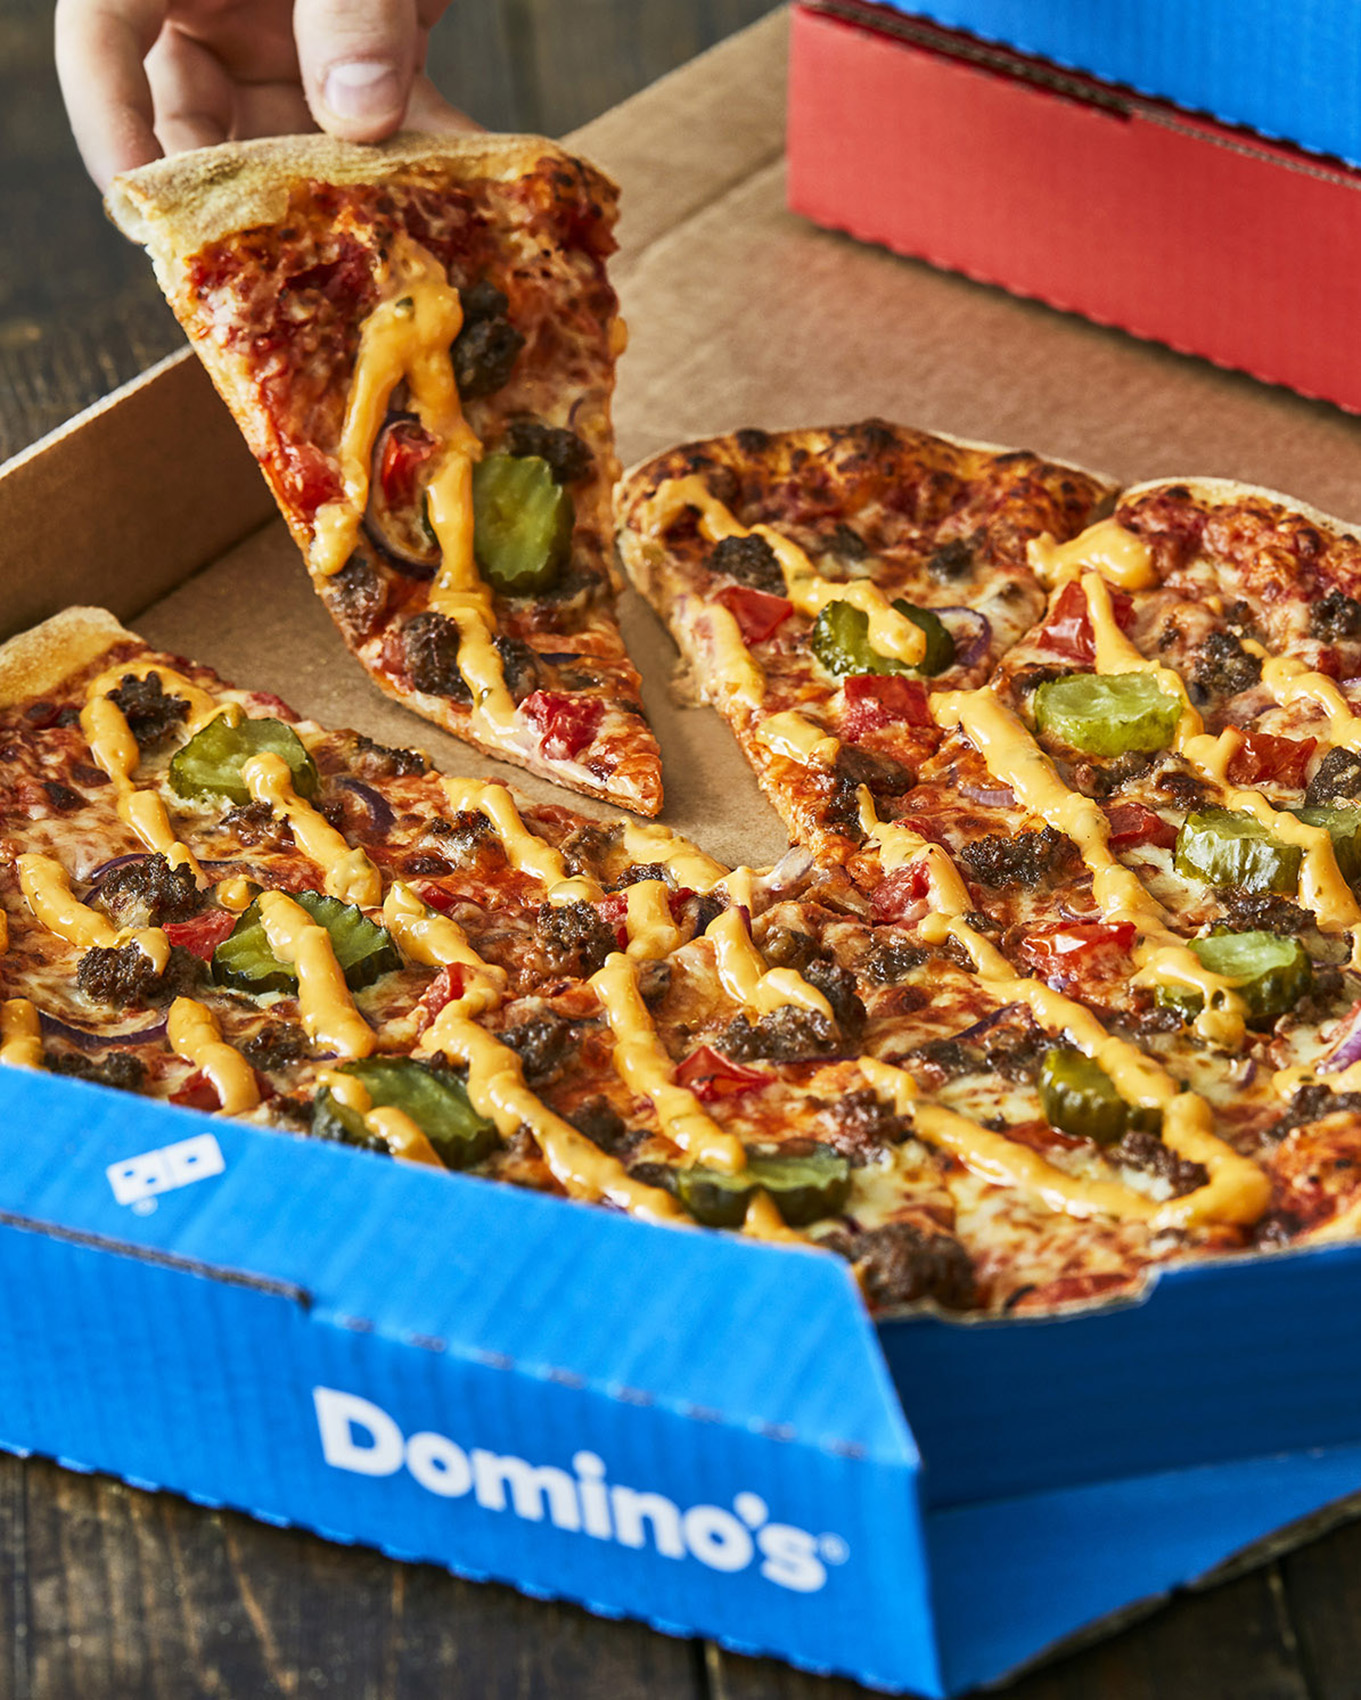 SteveRyan_Photographer_Food_Dominos_Pizza_13